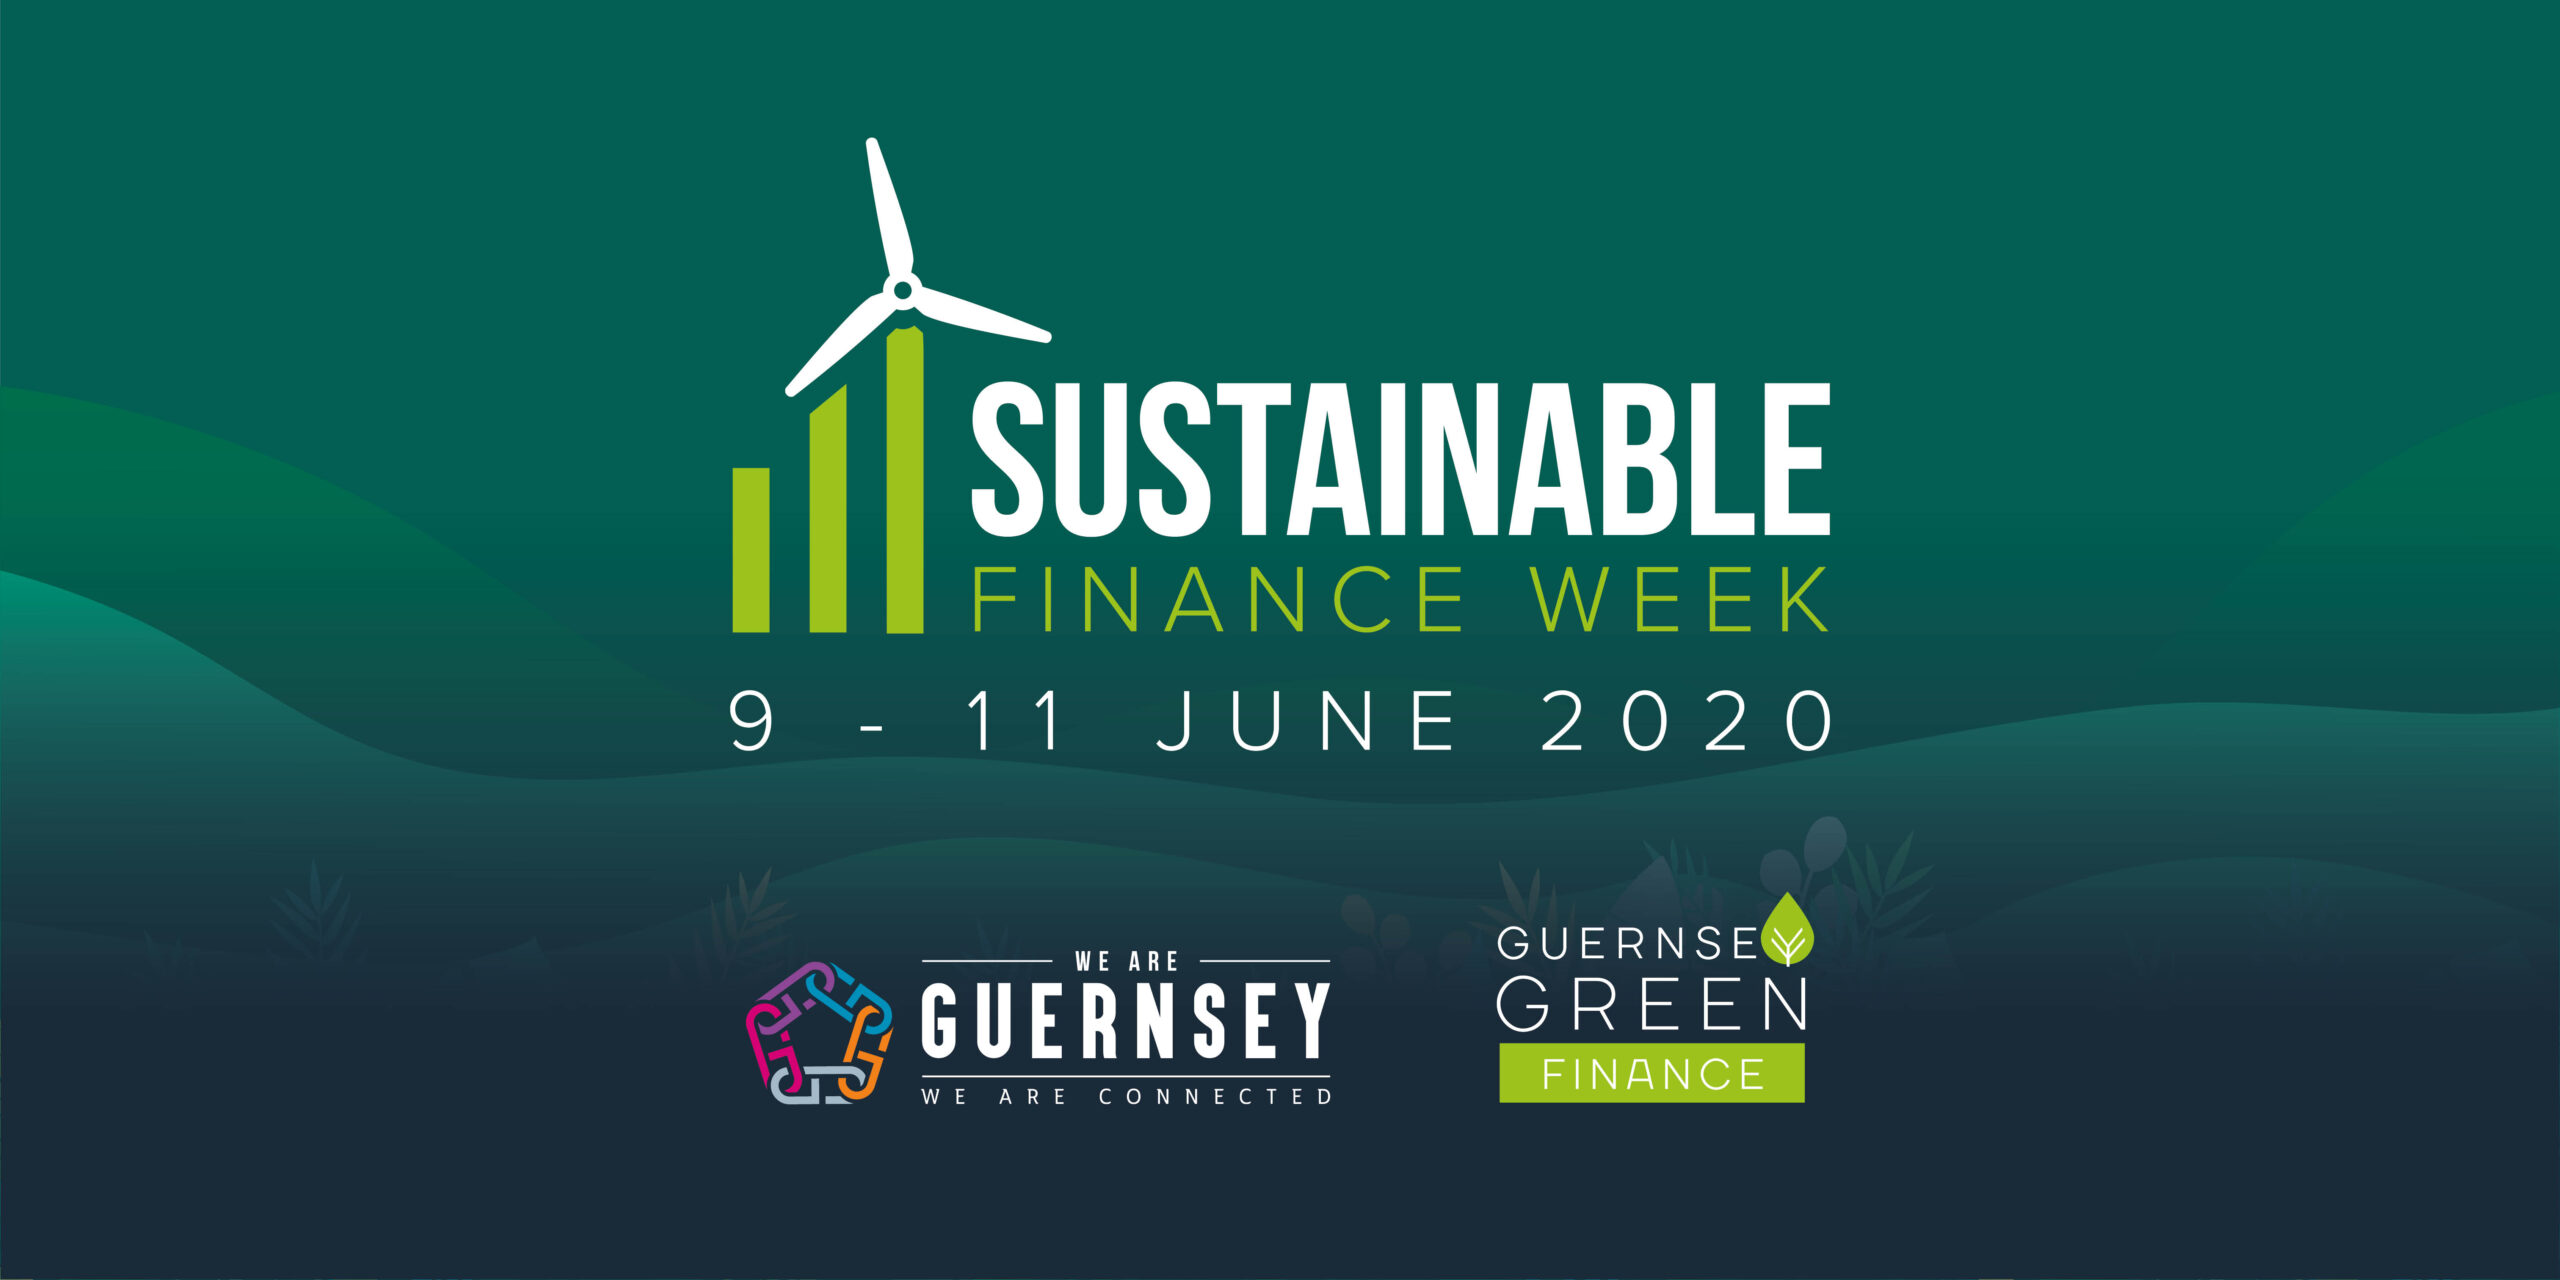 Guernsey Hosts Sustainable Finance Week   We Are Guernsey